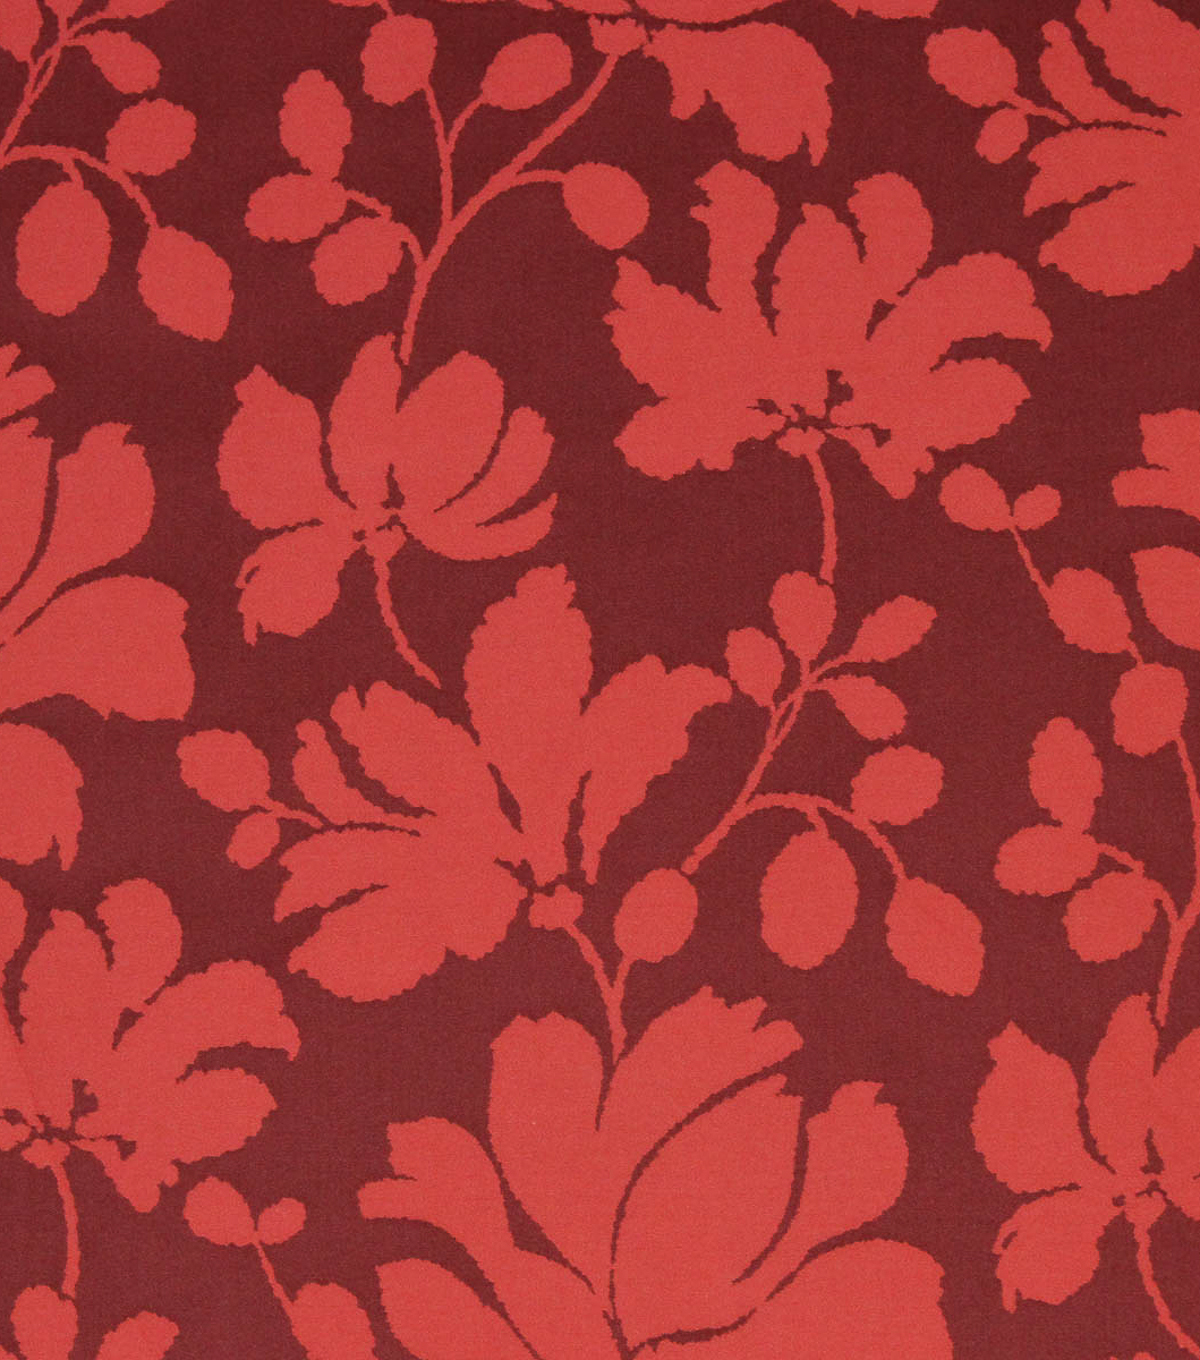 Richloom Studio Lightweight Decor Fabric 55\u0022-Evan Currant